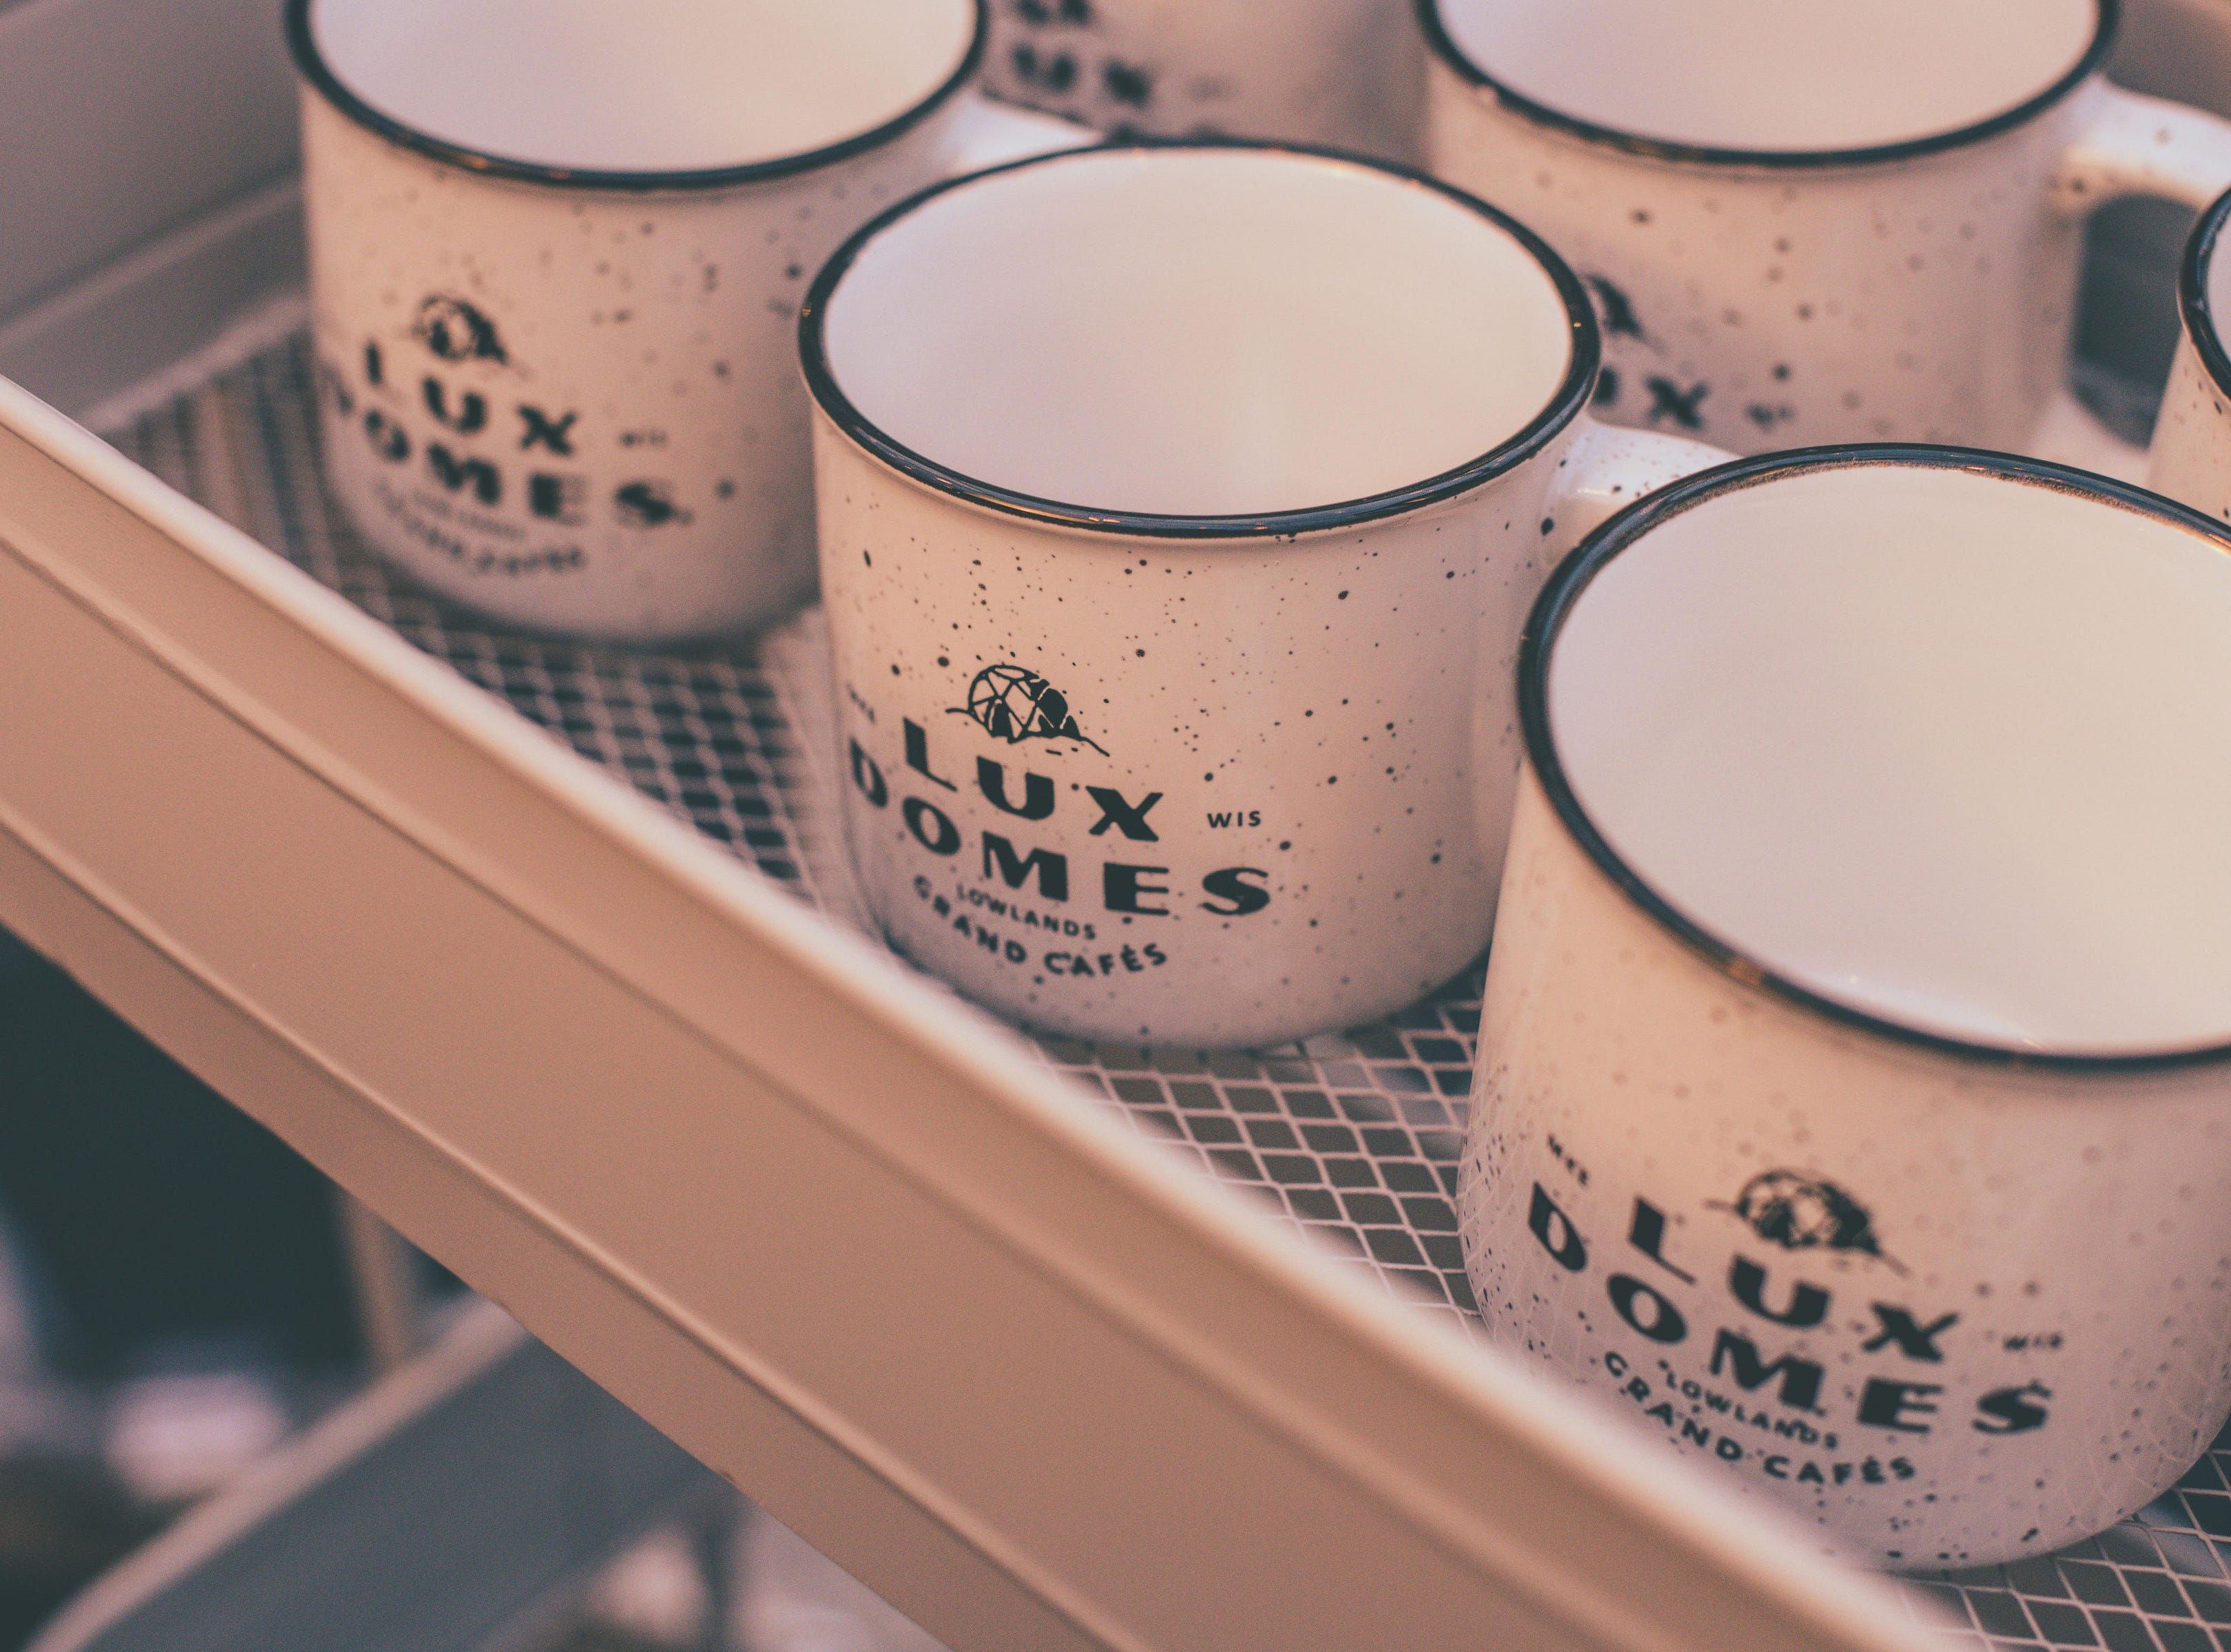 Visitors to Cafe Benelux's Lux Domes get to take home these specialty mugs after their domes experience.